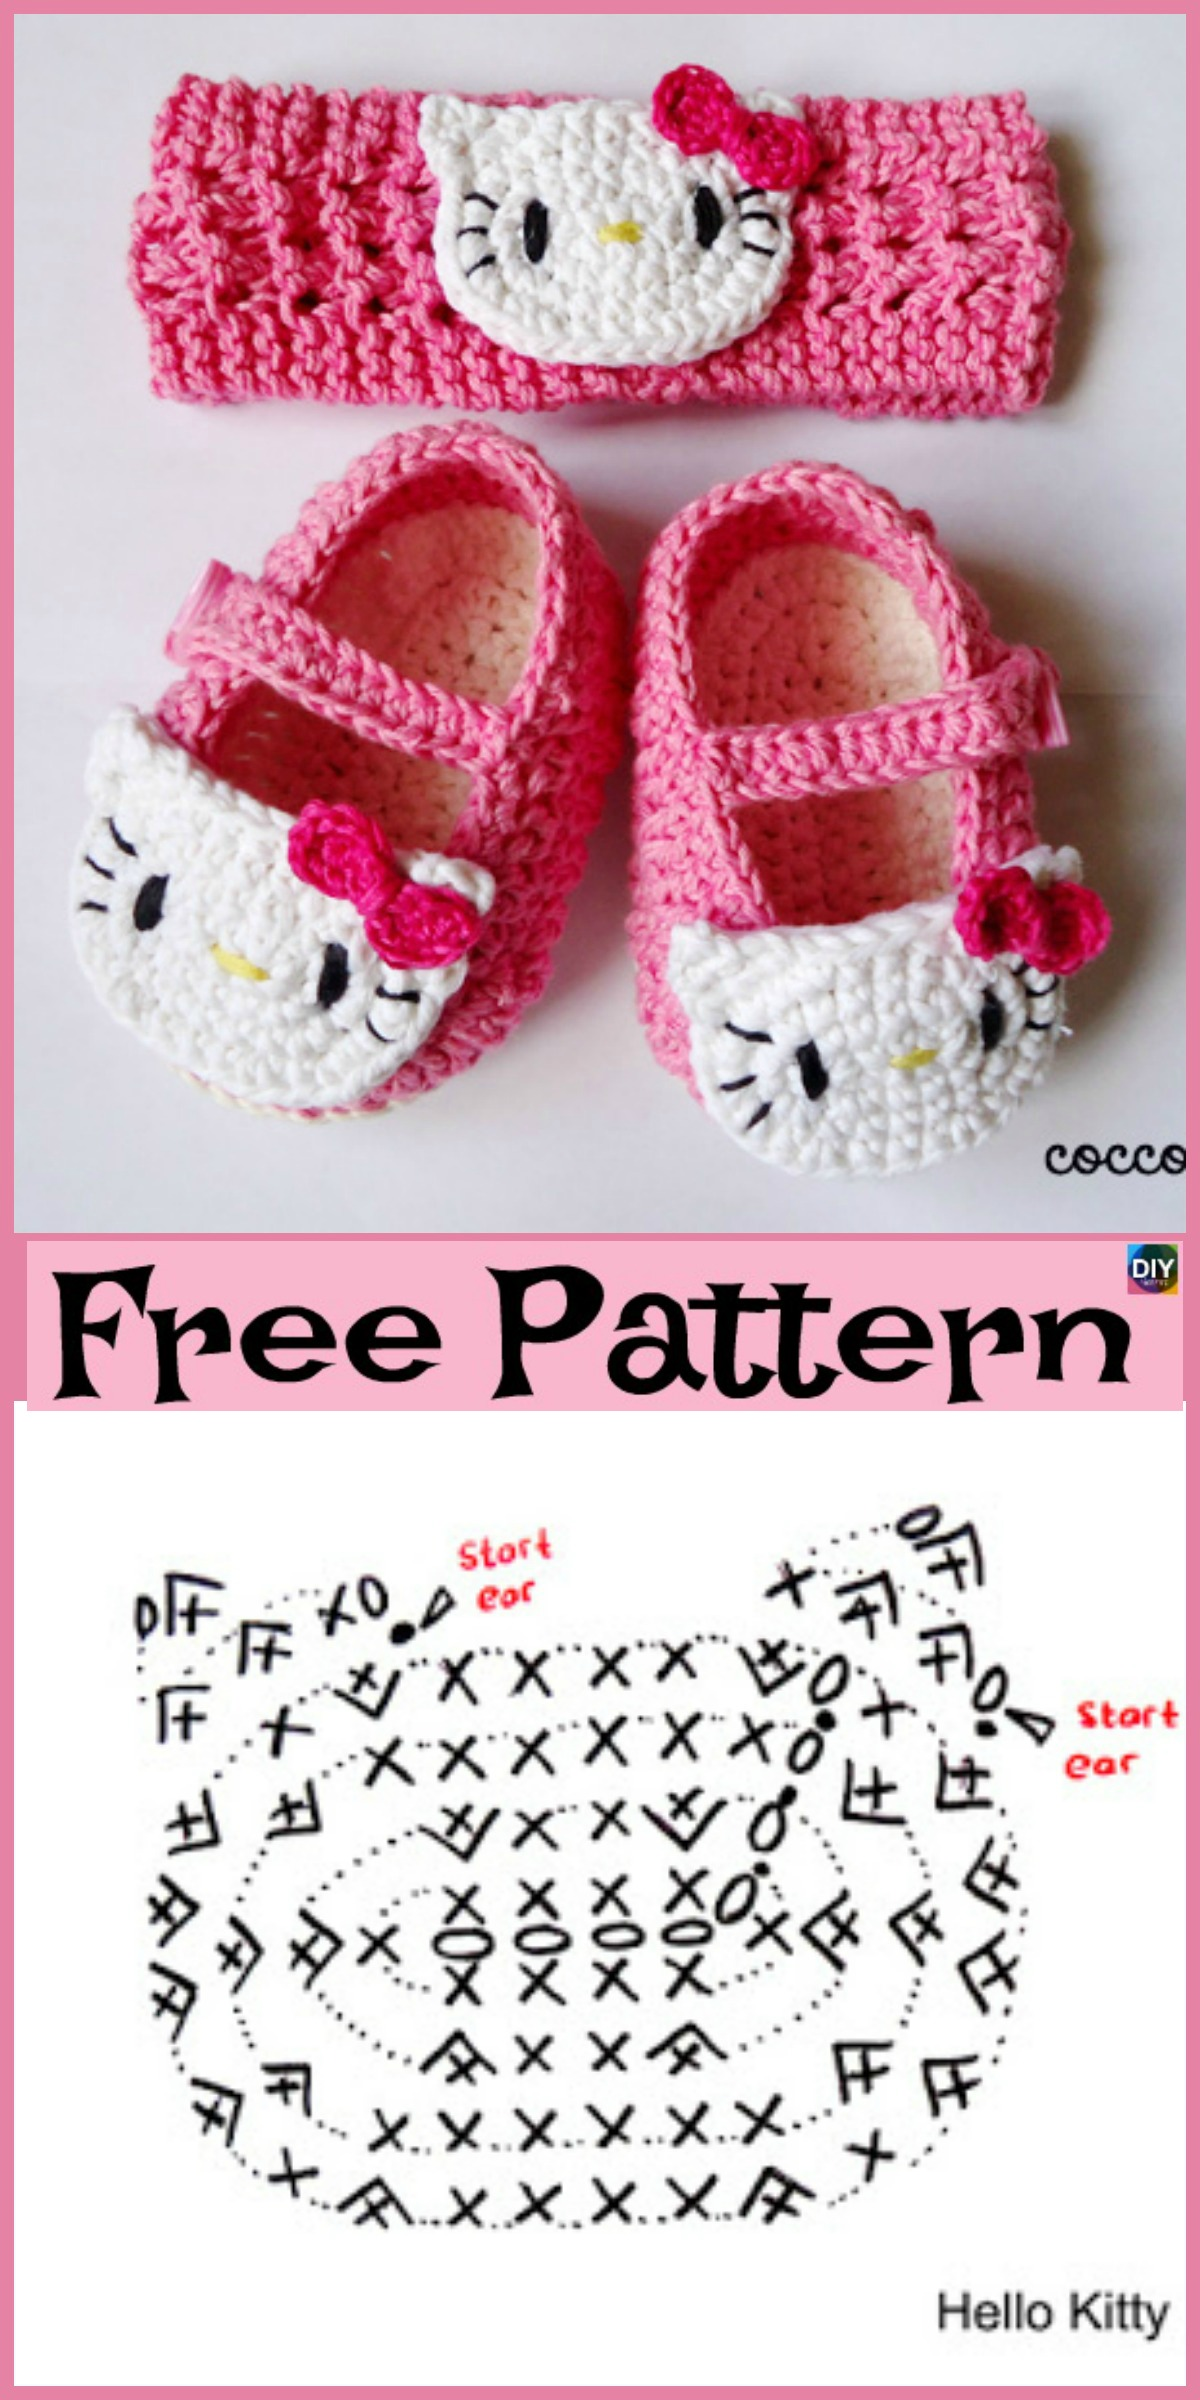 diy4ever-Cute Crocheted Baby Shoes - Free Patterns